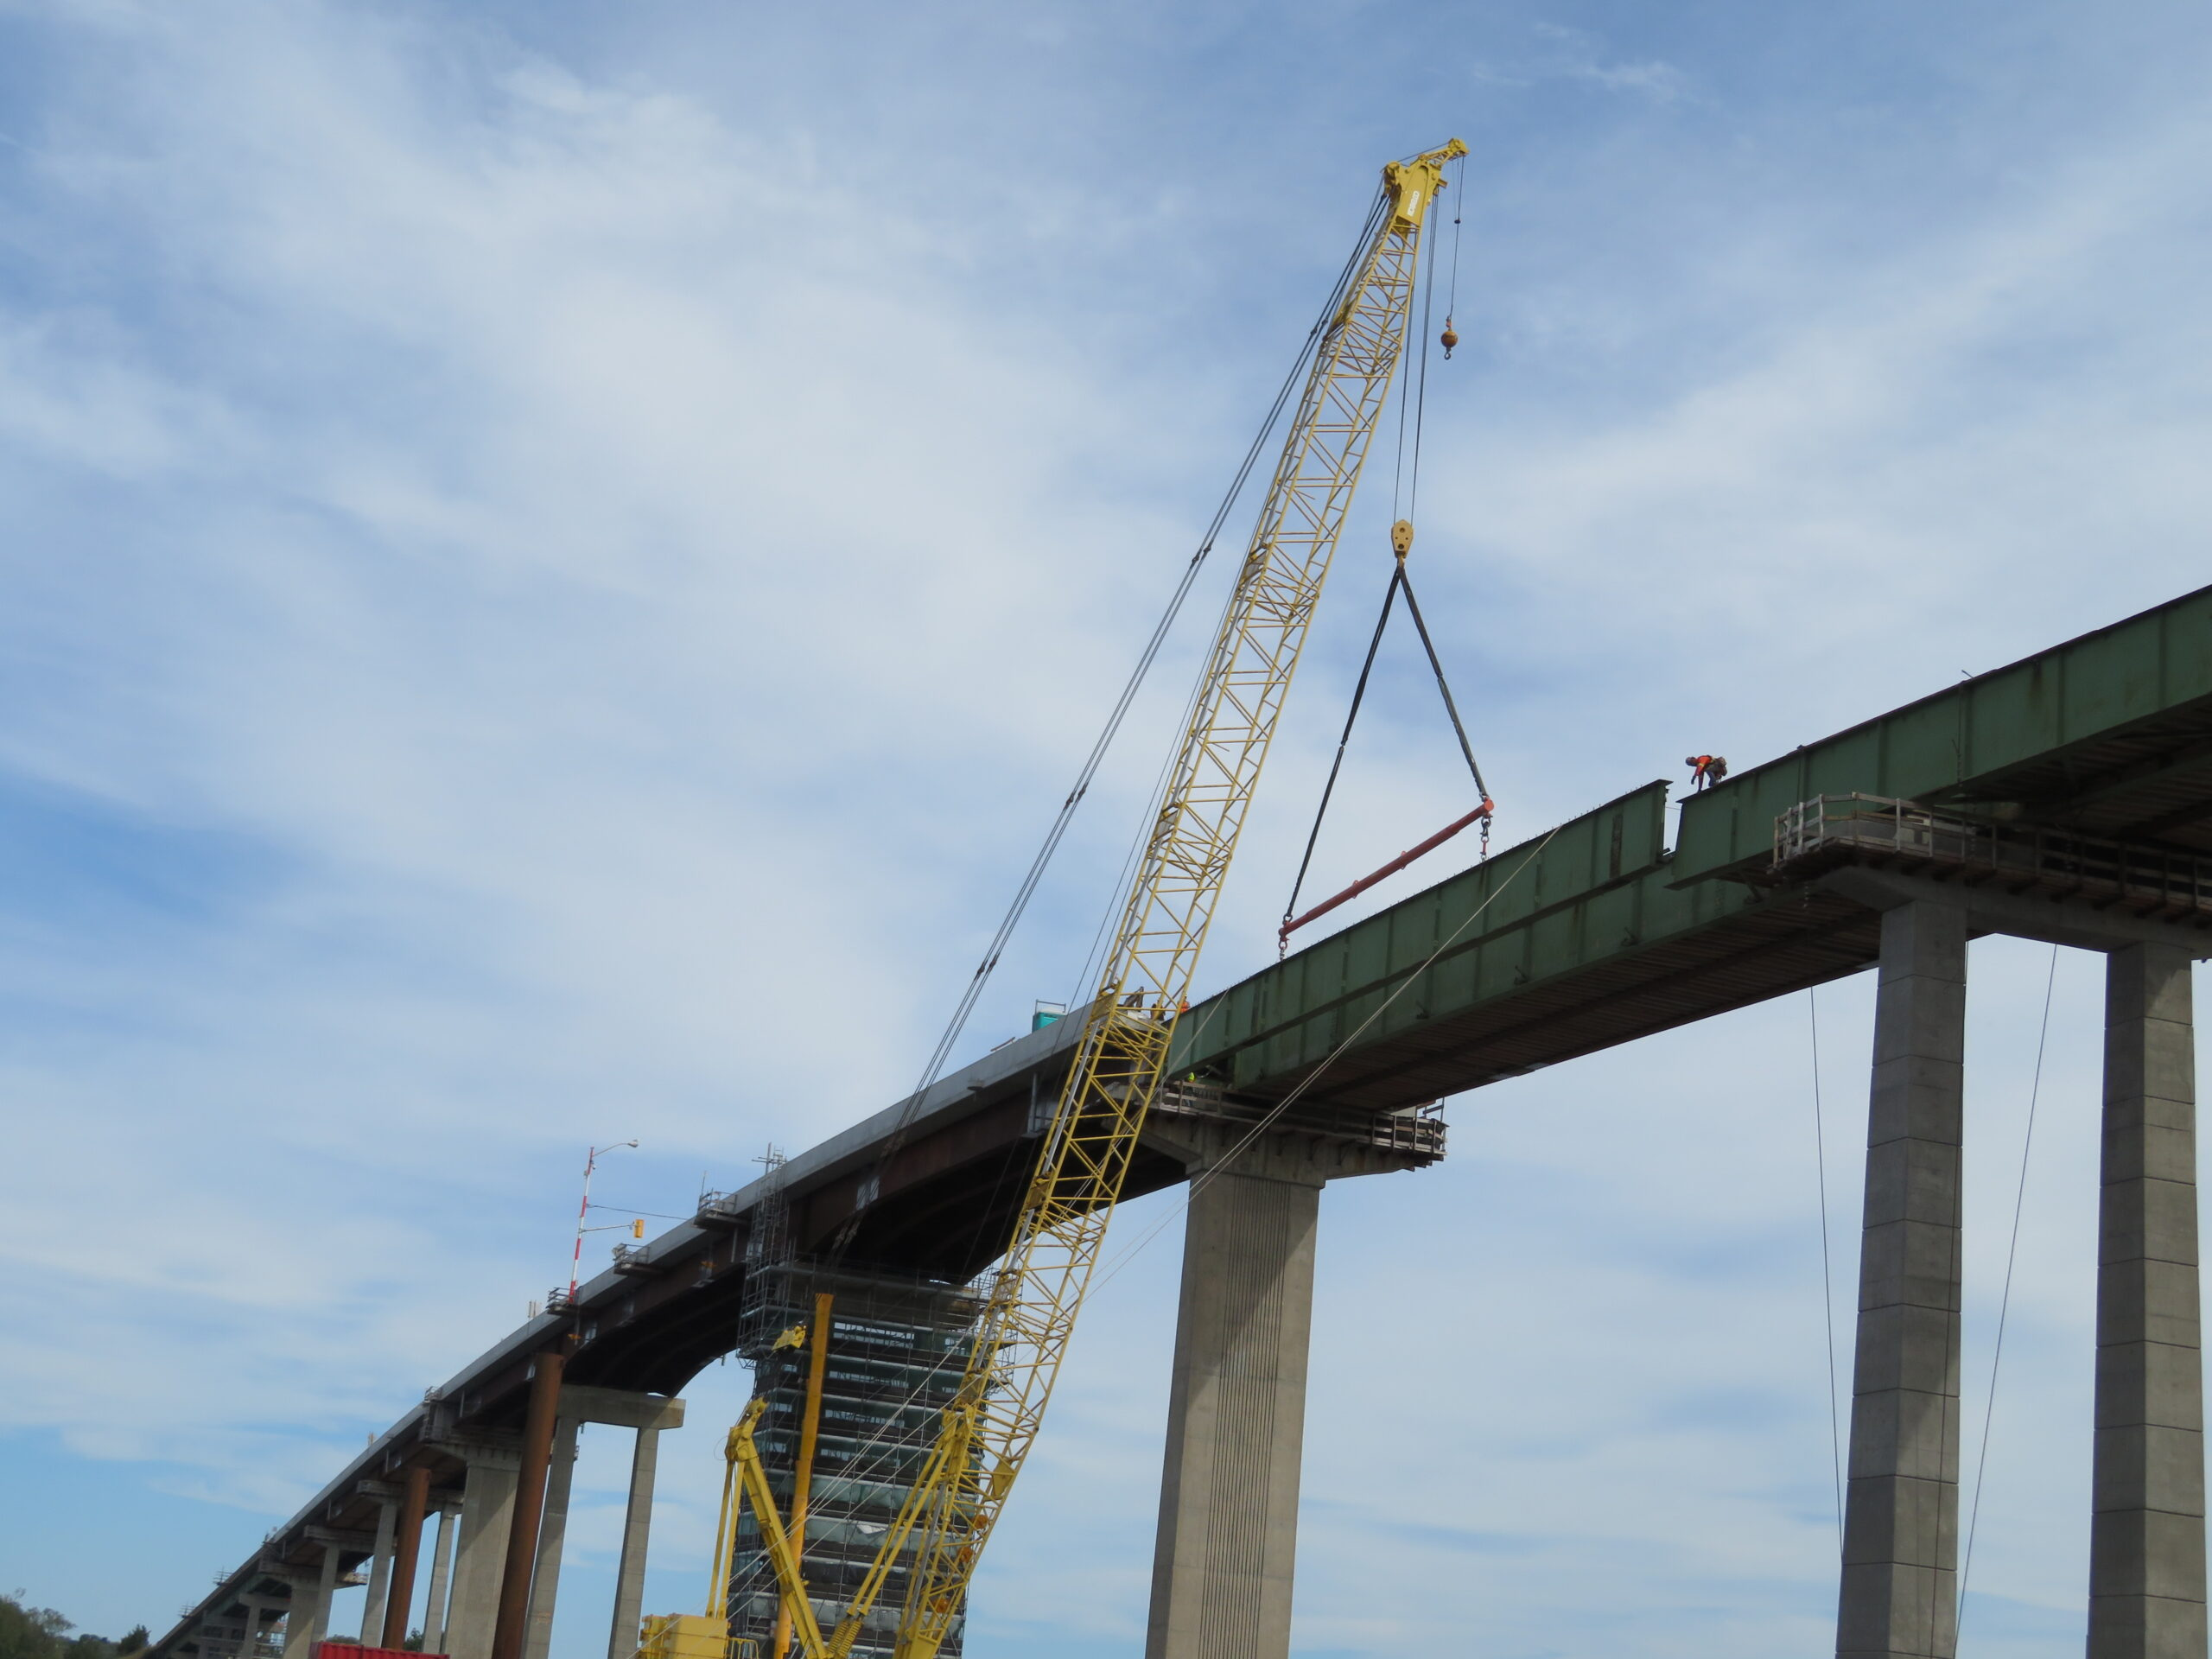 Starting to lower the first section of girder